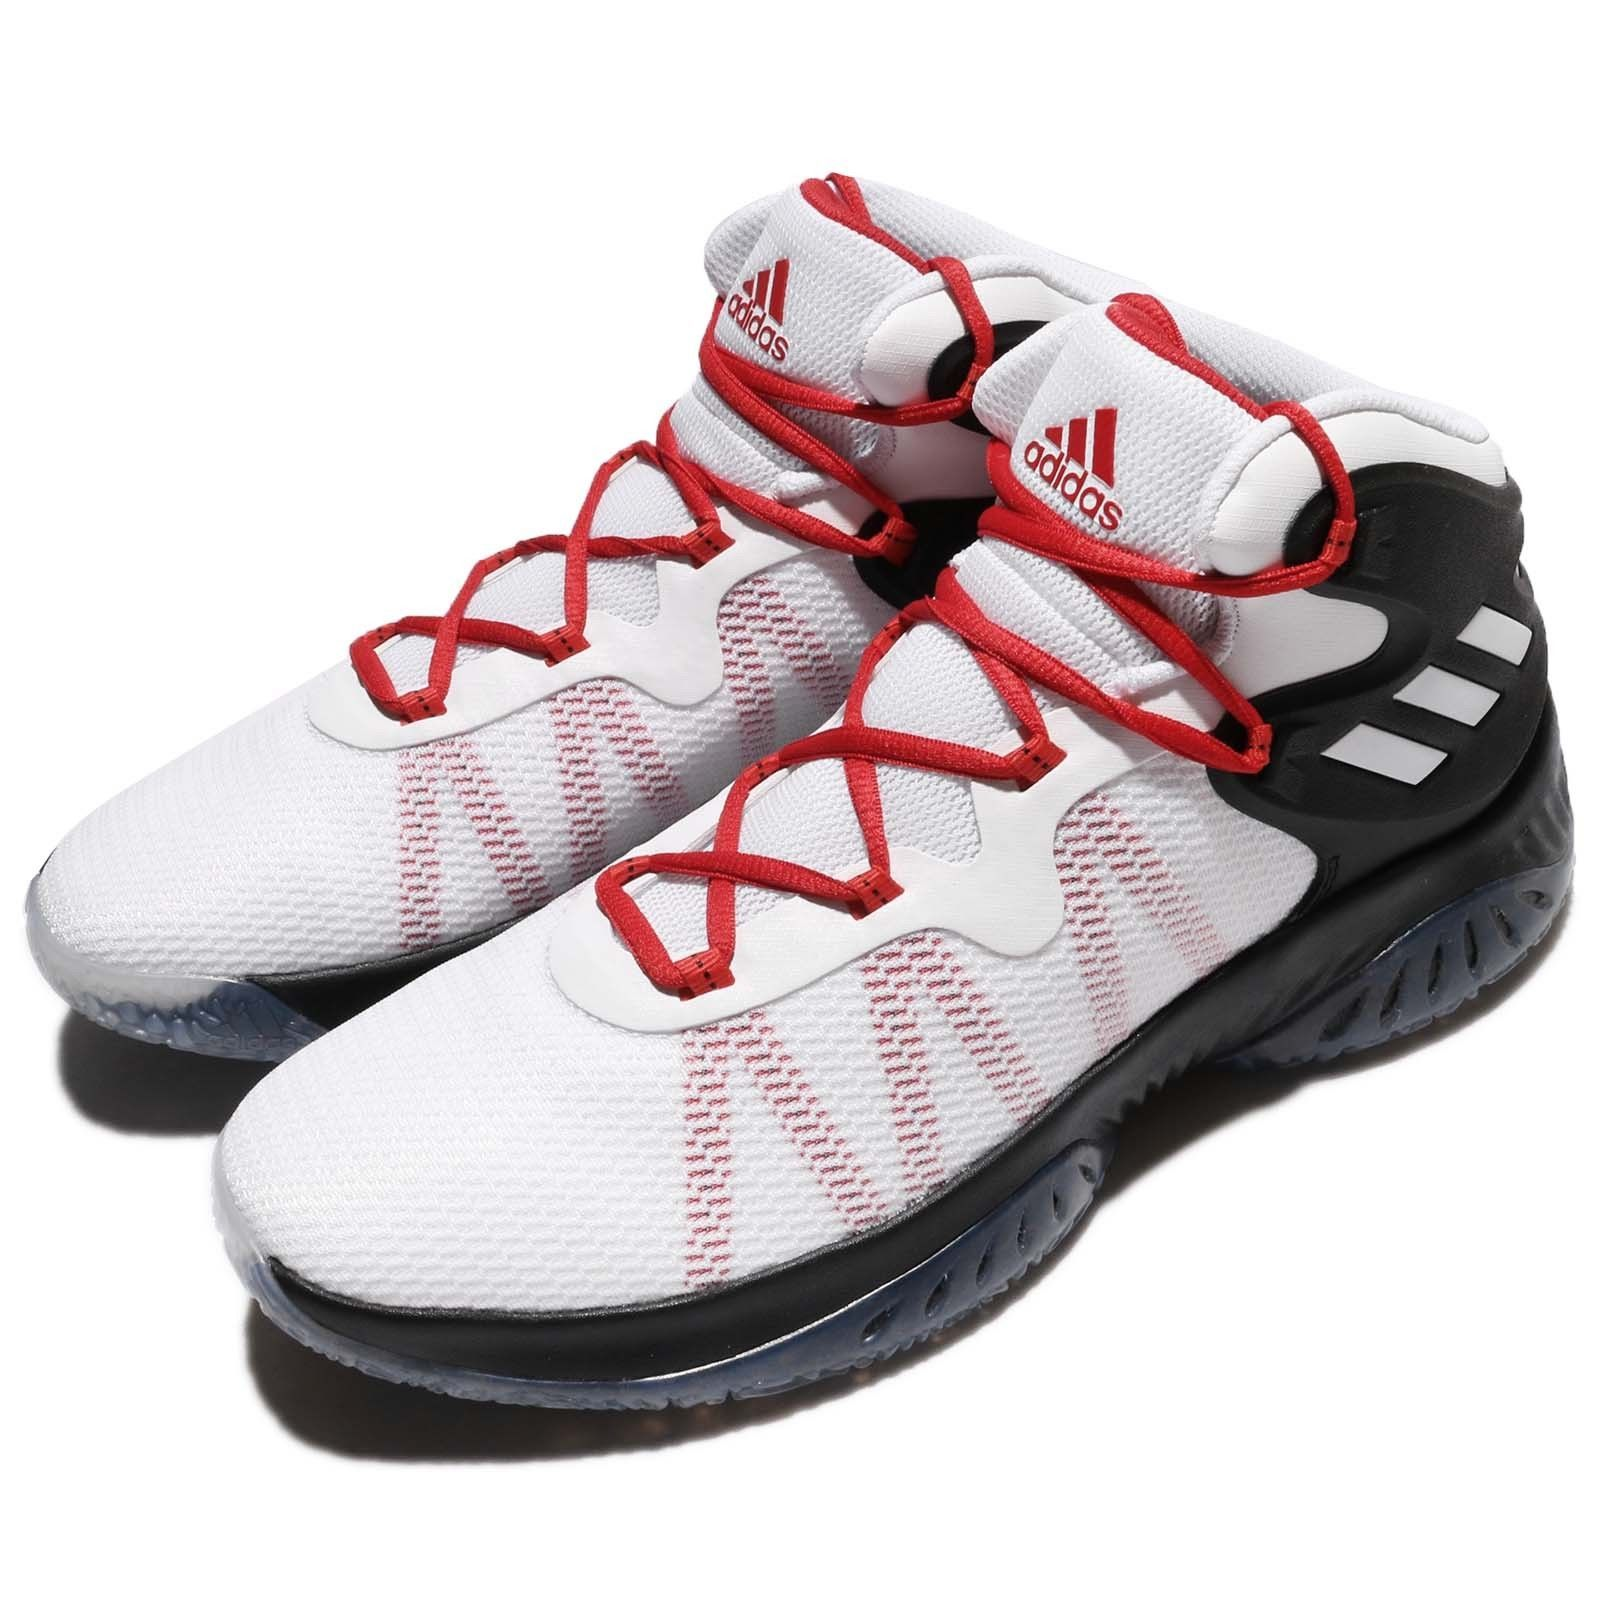 adidas Explosive Bounce Black White Red Men Basketball Shoes Sneakers BY3788